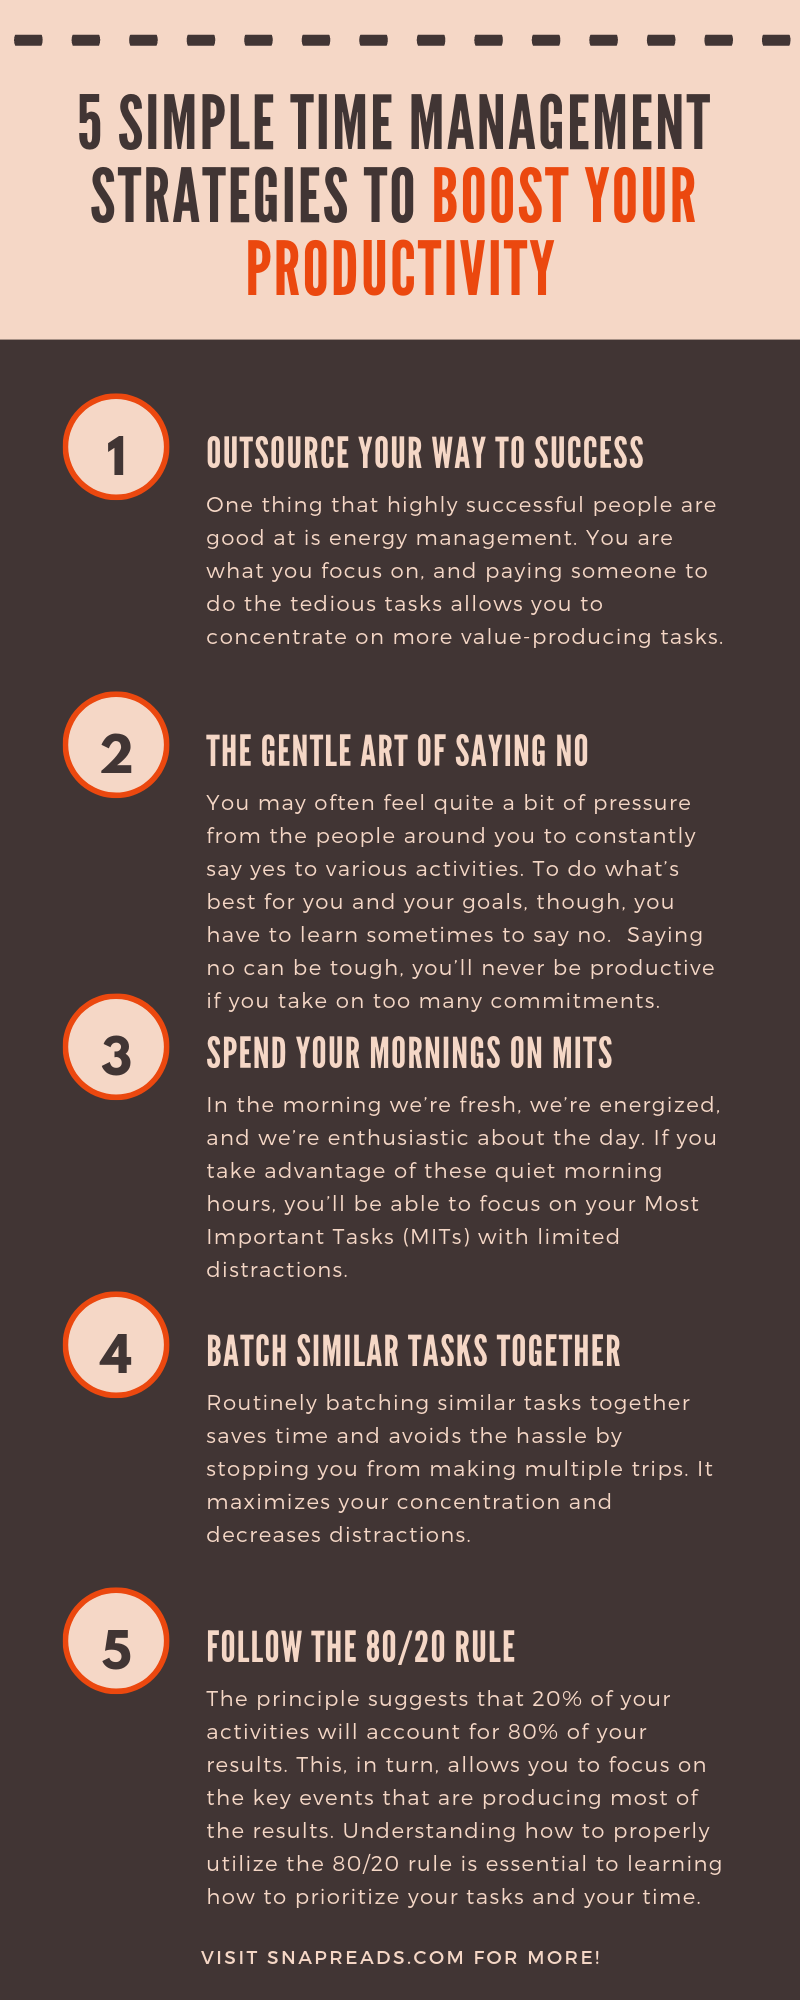 5 Simple Time Management Strategies To Boost Your Productivity